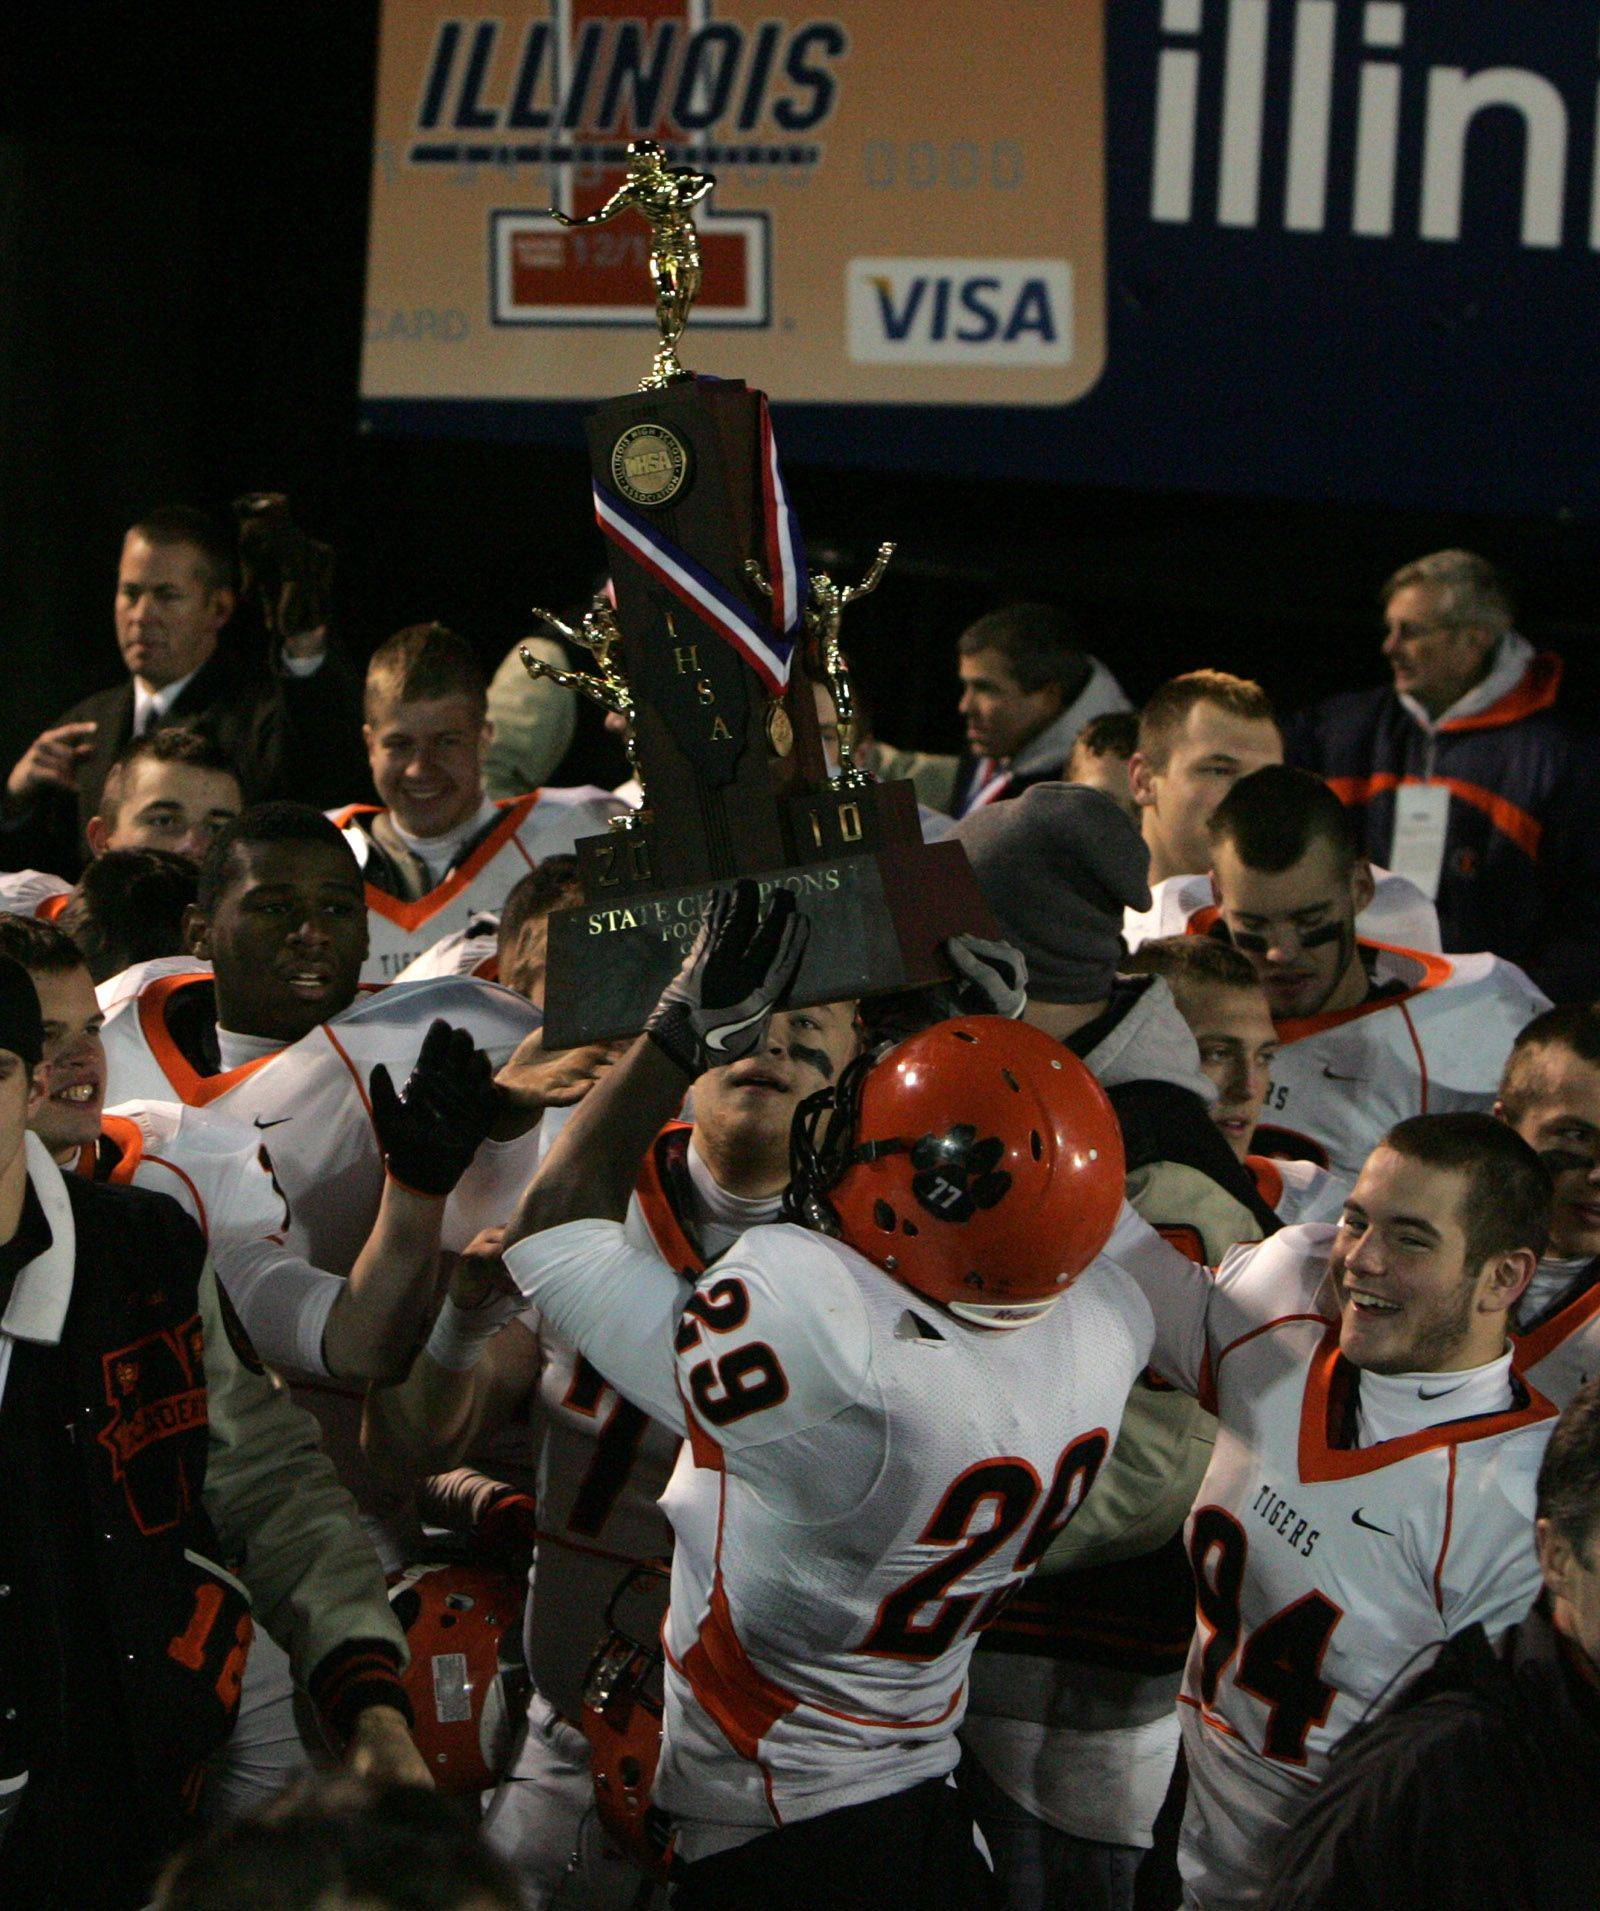 Wheaton Warrenville South celebrates with the state trophy after winning 28-17 over Lake Zurich in the 7A state title game in Champaign on Saturday, November 27.